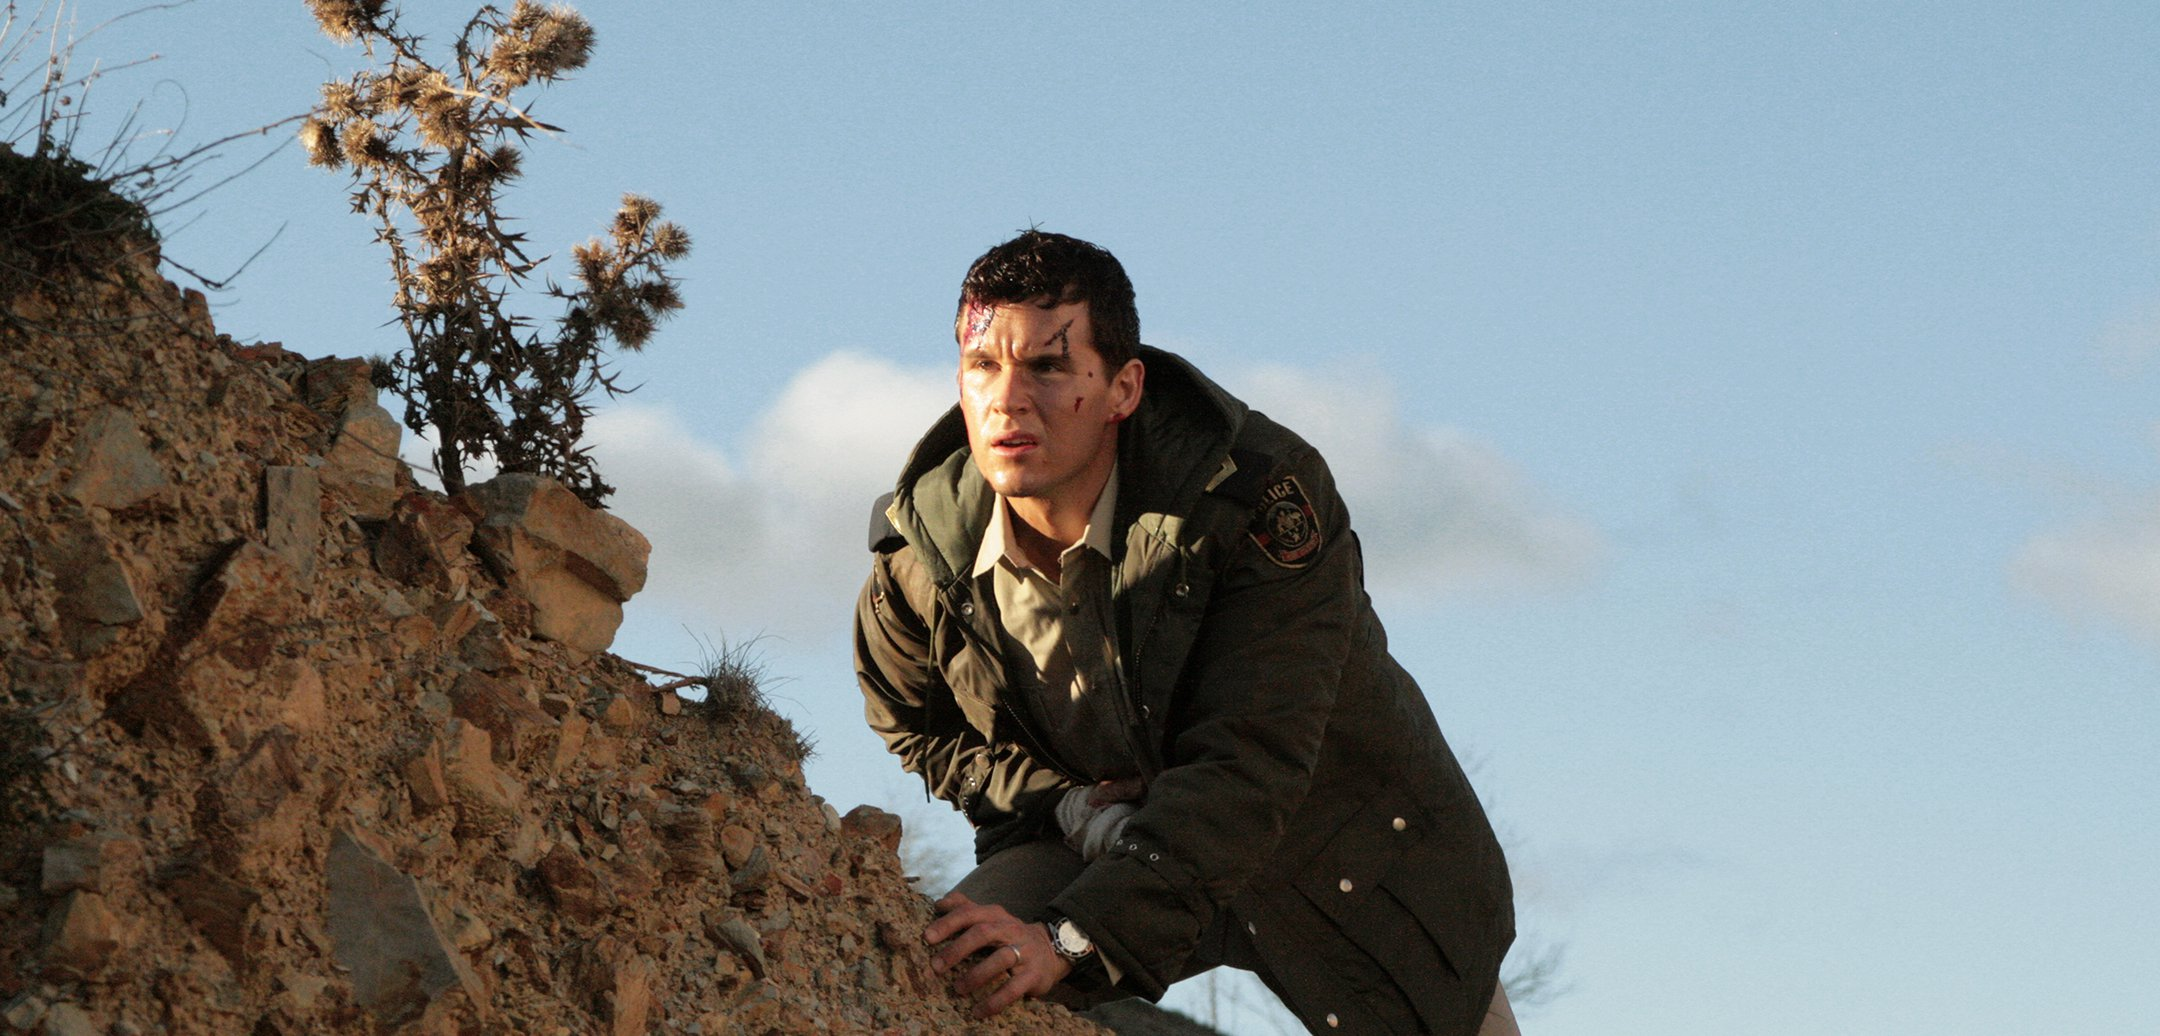 Ryan Kwanten as Shane Cooper, with head injuries ascending a hill in a still from 'Red Hill' (2010)